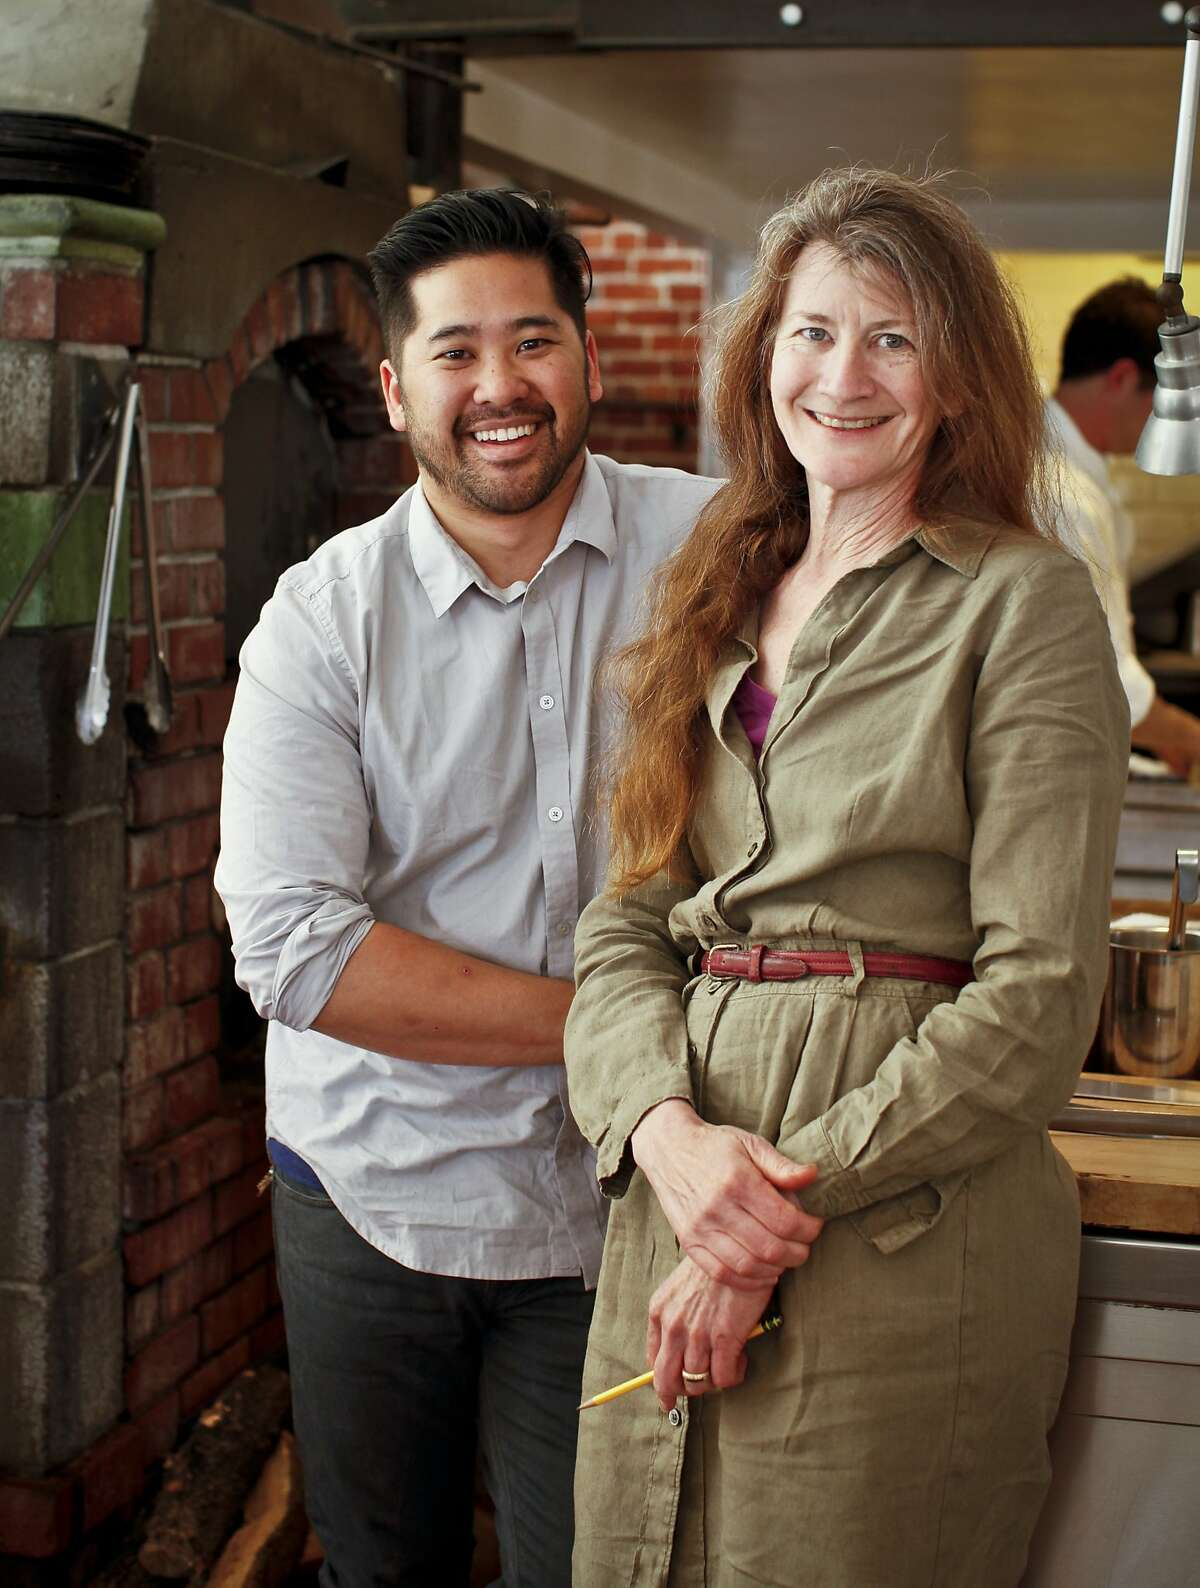 Brandon Jew, left, chef at Bar Agricole, says mentoring by Judy Rodgers of Zuni, both seen at Zuni on Wednesday, June 13, 2012 in San Francisco, Calif., has been a major factor for his success in the kitchen.